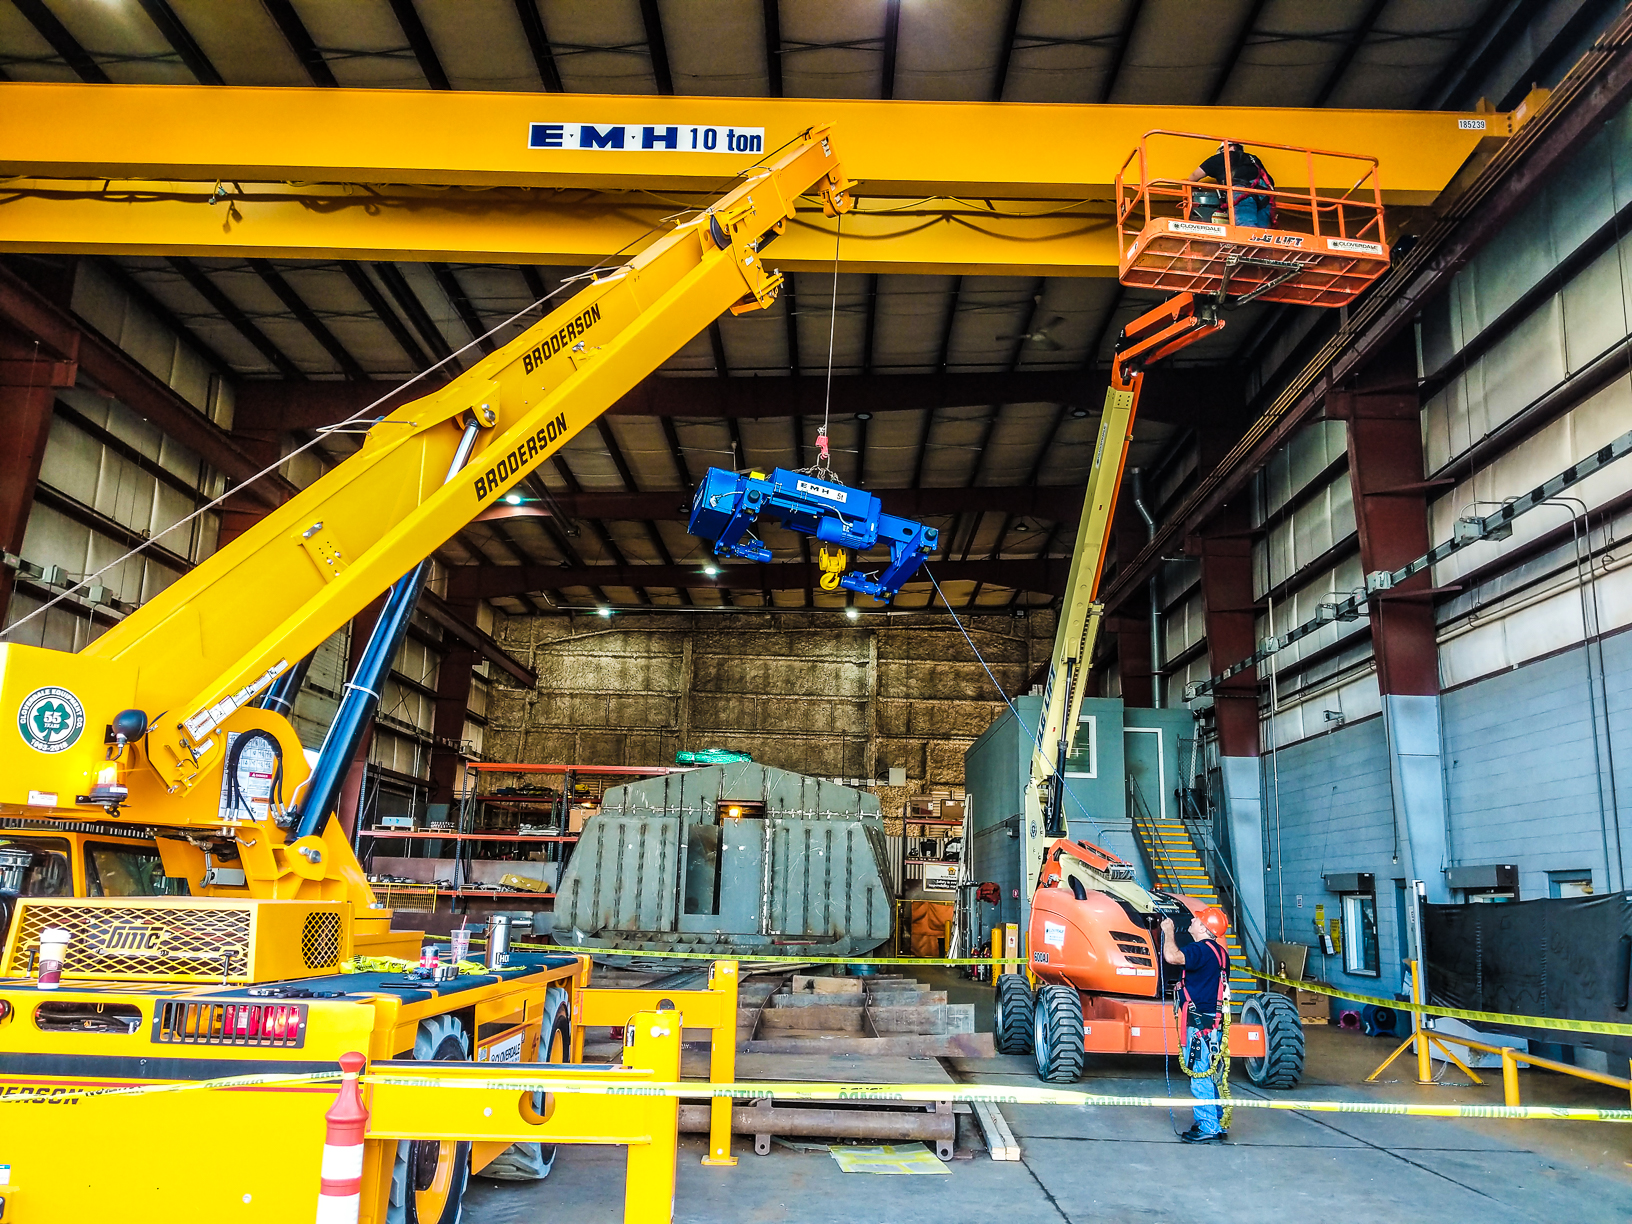 Shipyard Installs New Overhead Bridge Crane » The Great